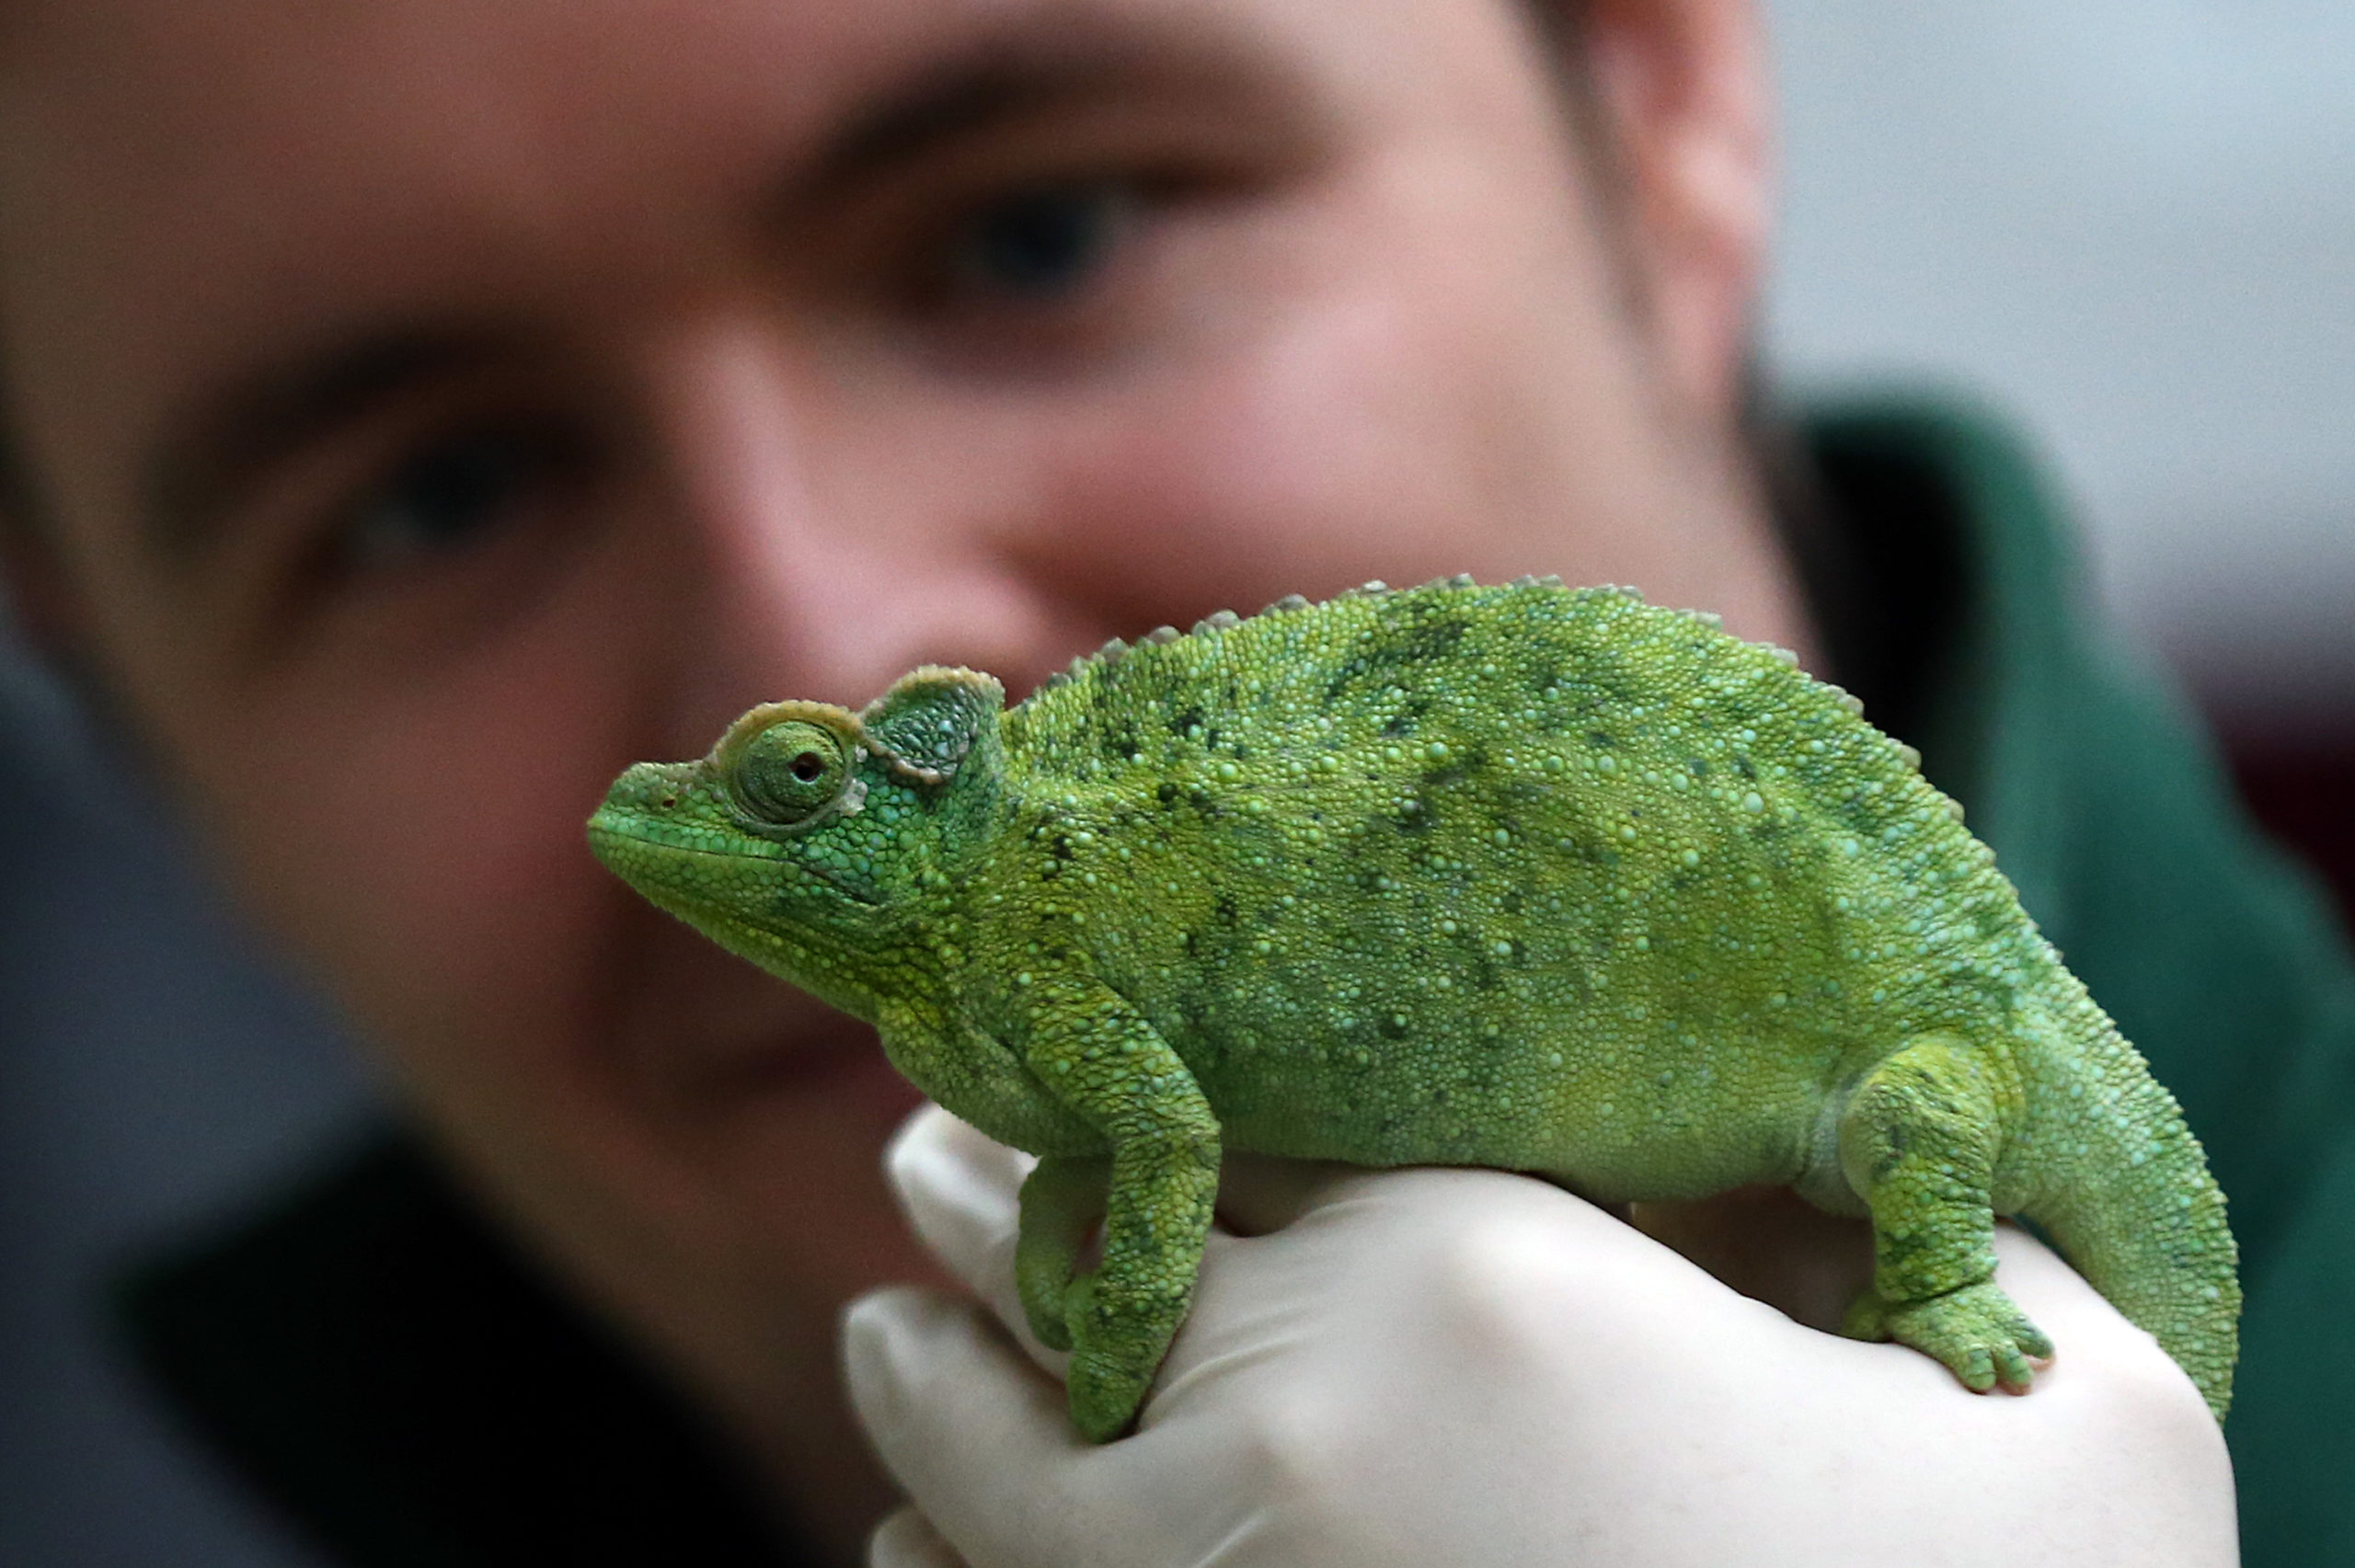 LONDON, ENGLAND - JANUARY 04: A Jackson's chameleon is handled by zoo keeper Luke Harding during the annual stocktake of animals at ZSL London Zoo on January 4, 2016 in London, England. The zoo's annual stocktake requires keepers to check on the numbers of every one of the 800 different animal species, including every invertebrate, bird, fish, mammal, reptile, and amphibian. (Photo by Carl Court/Getty Images)